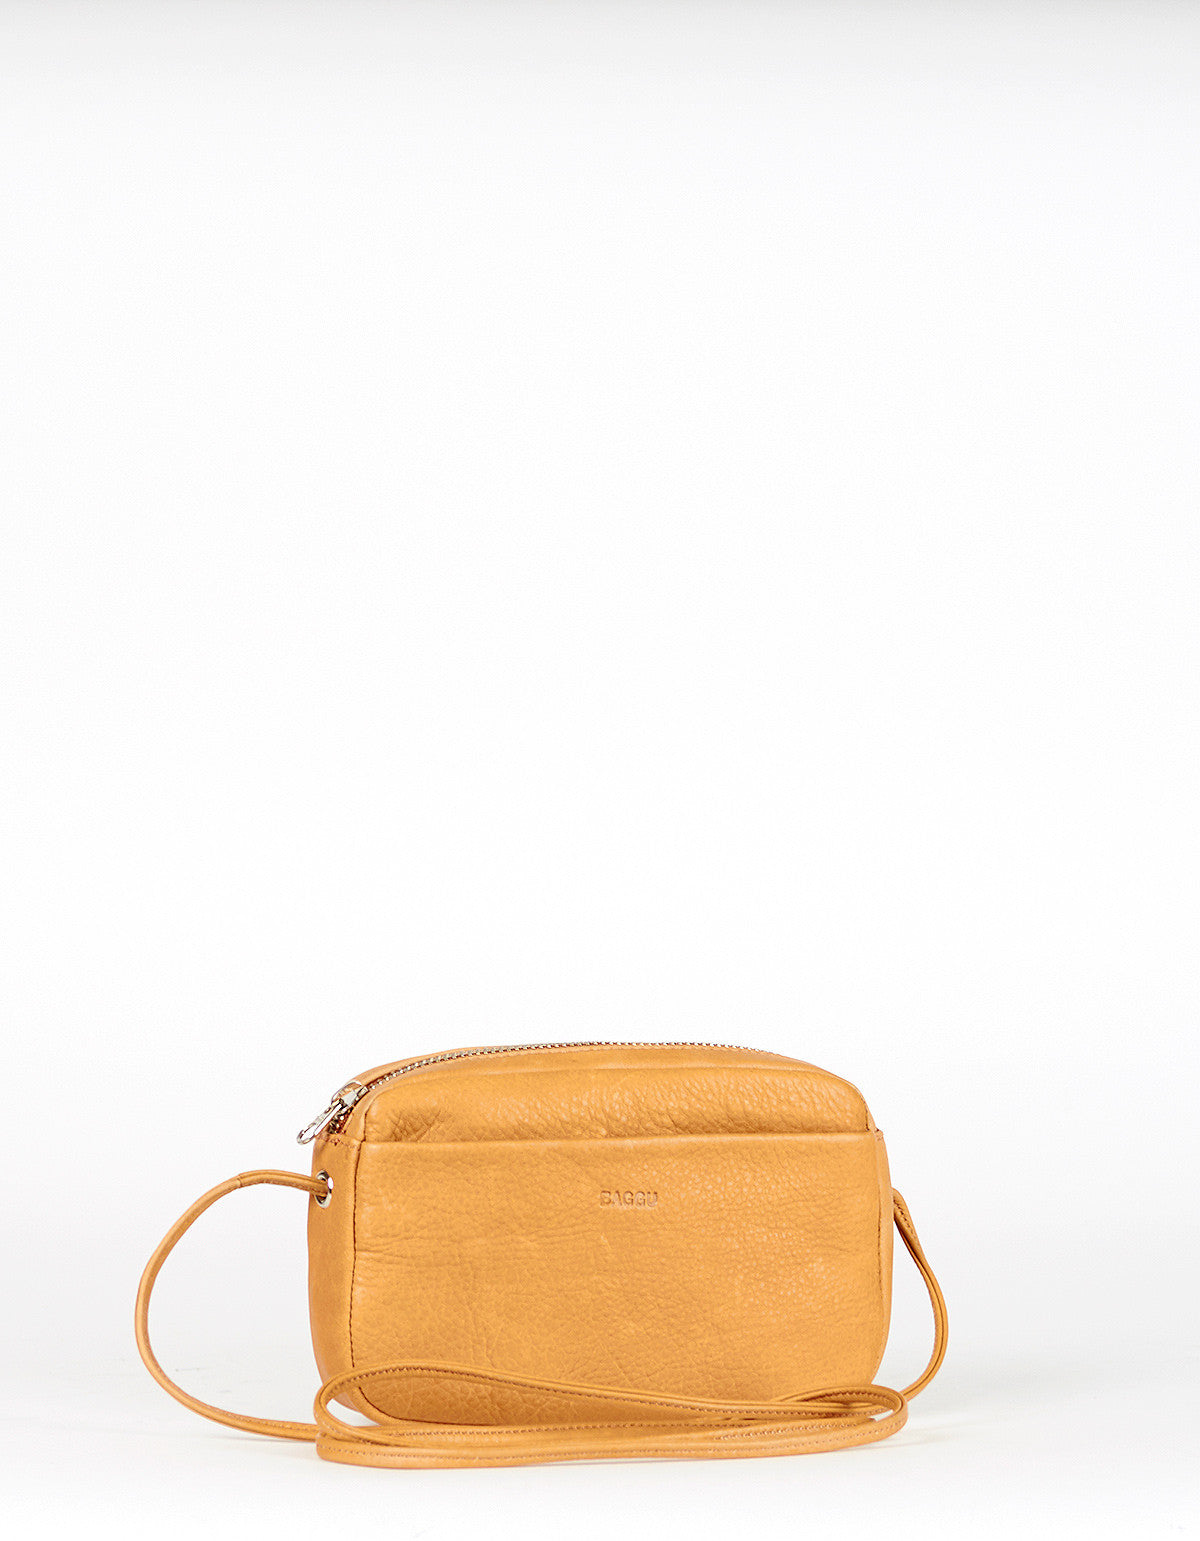 Baggu Mini Purse Saddle - Still Life - 4